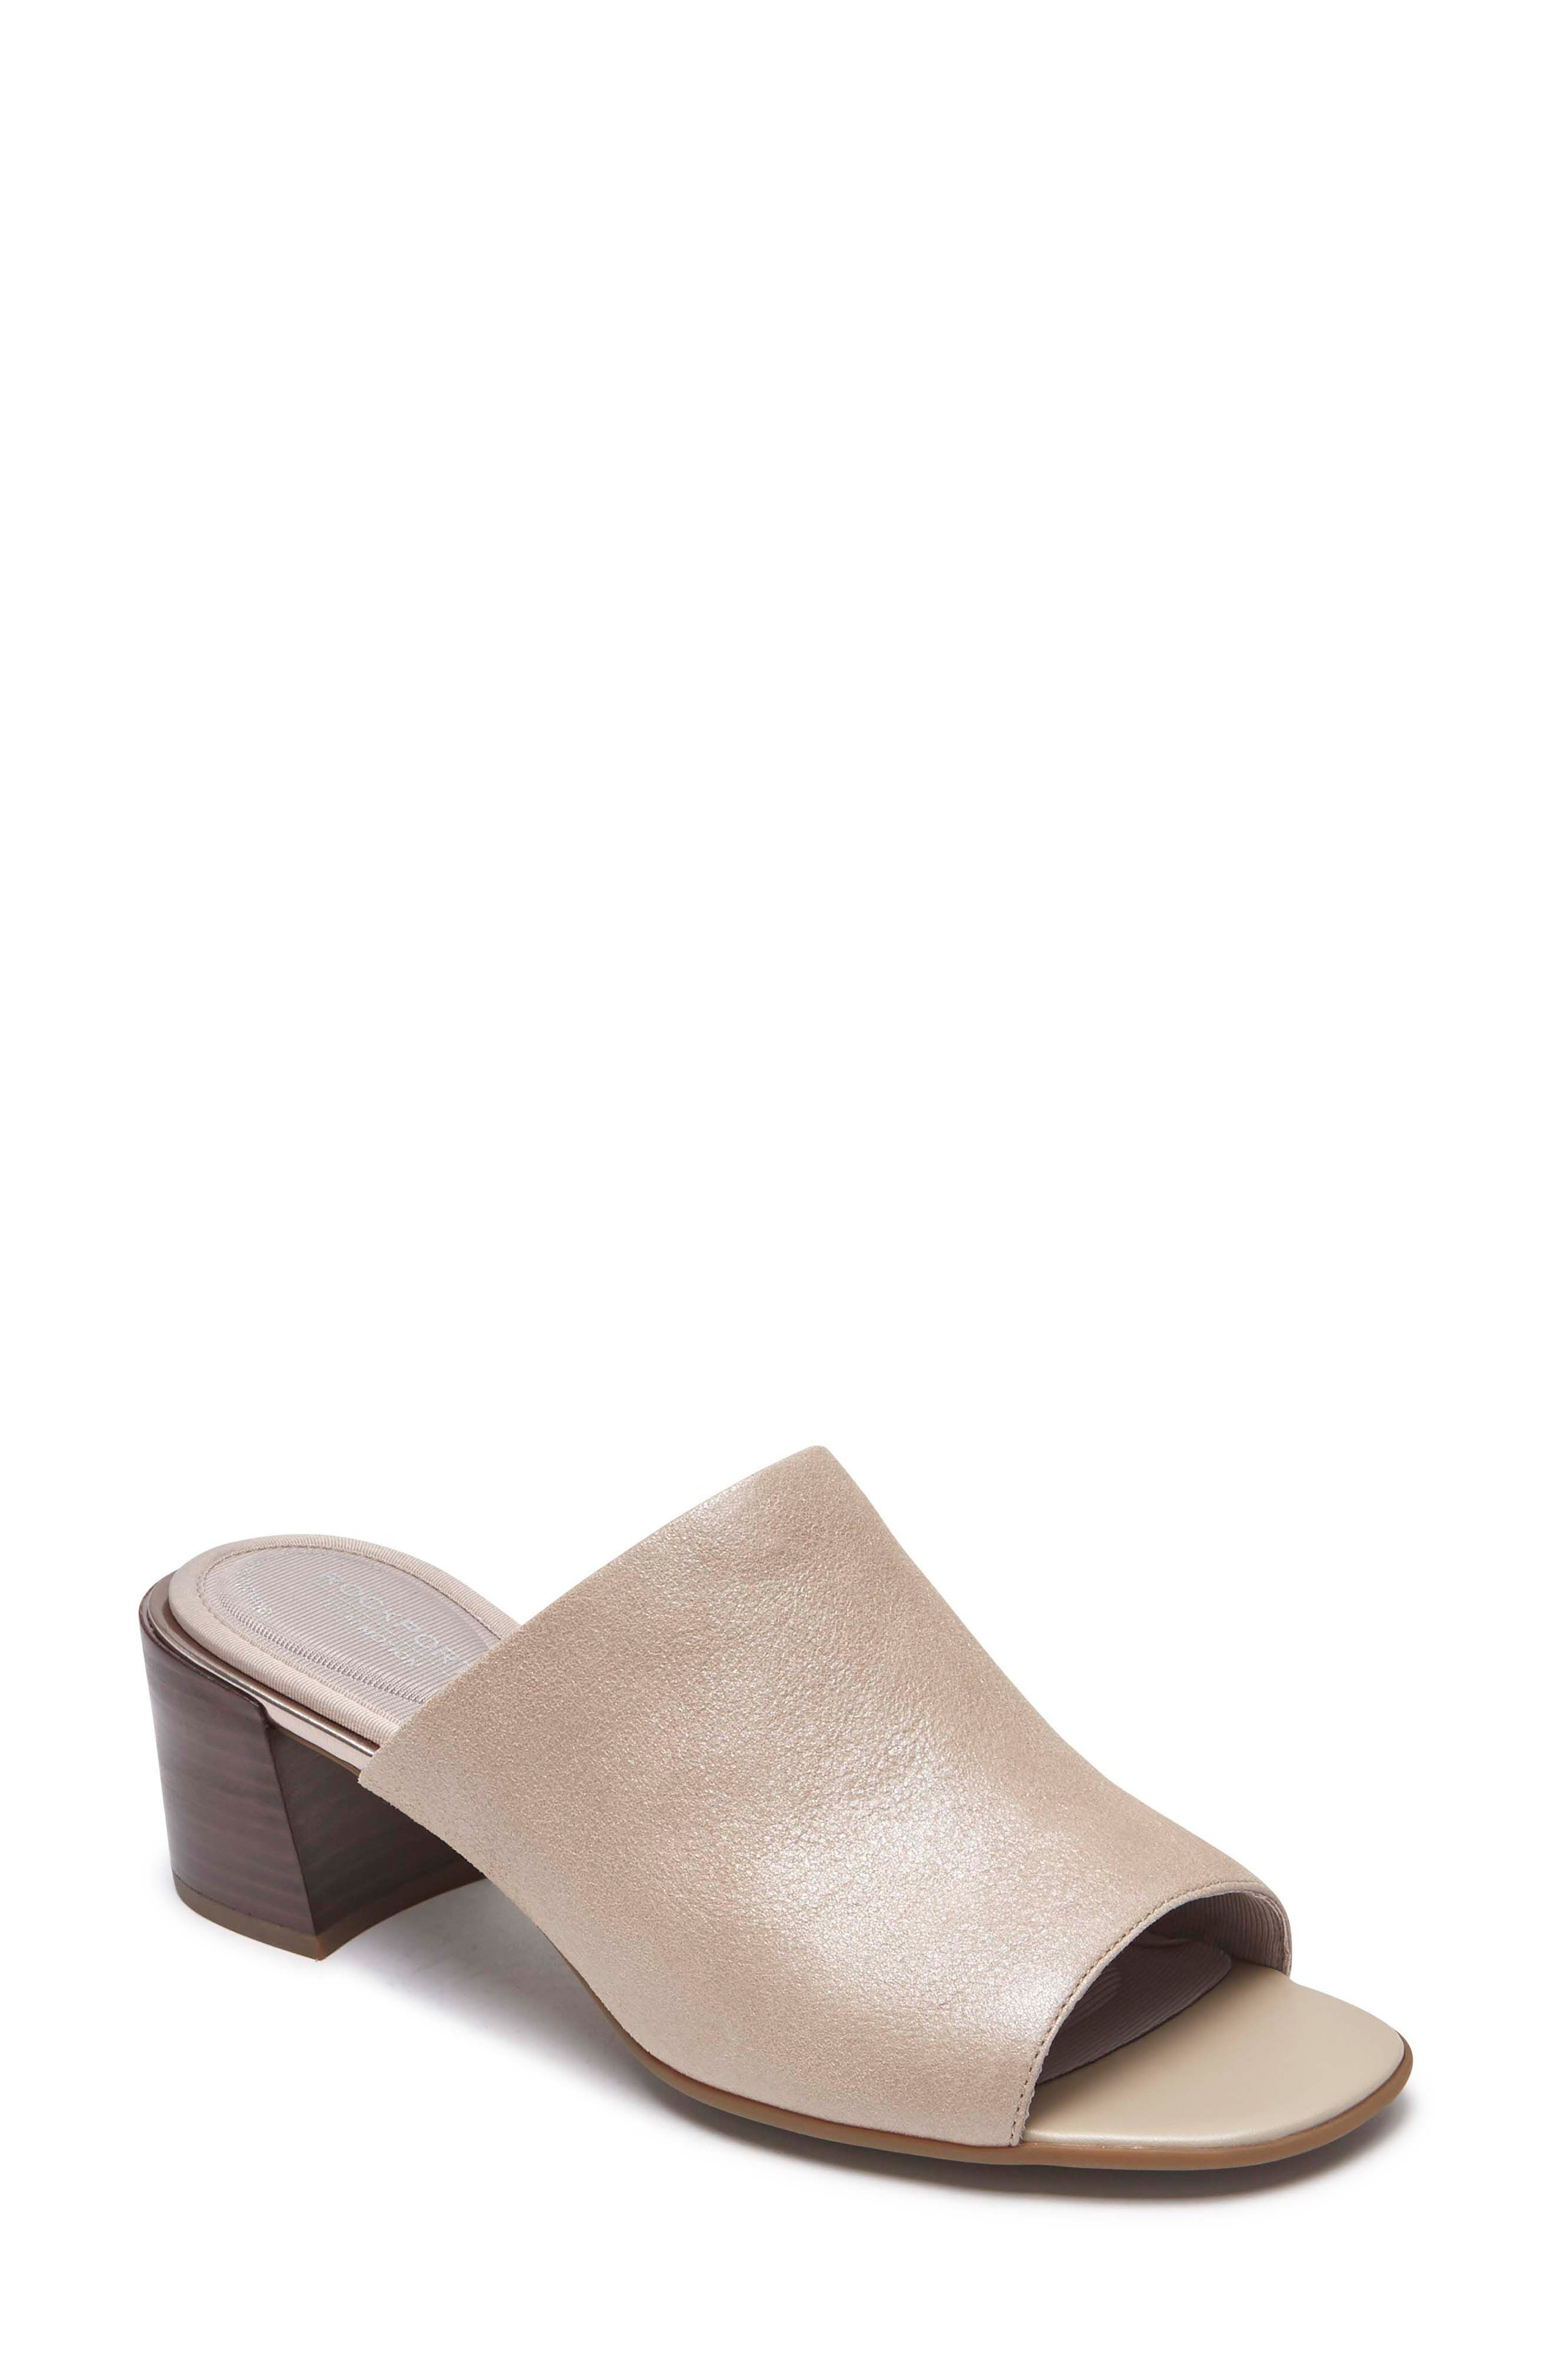 Total Motion Alaina Luxe Sandal,                         Main,                         color, Dove Leather